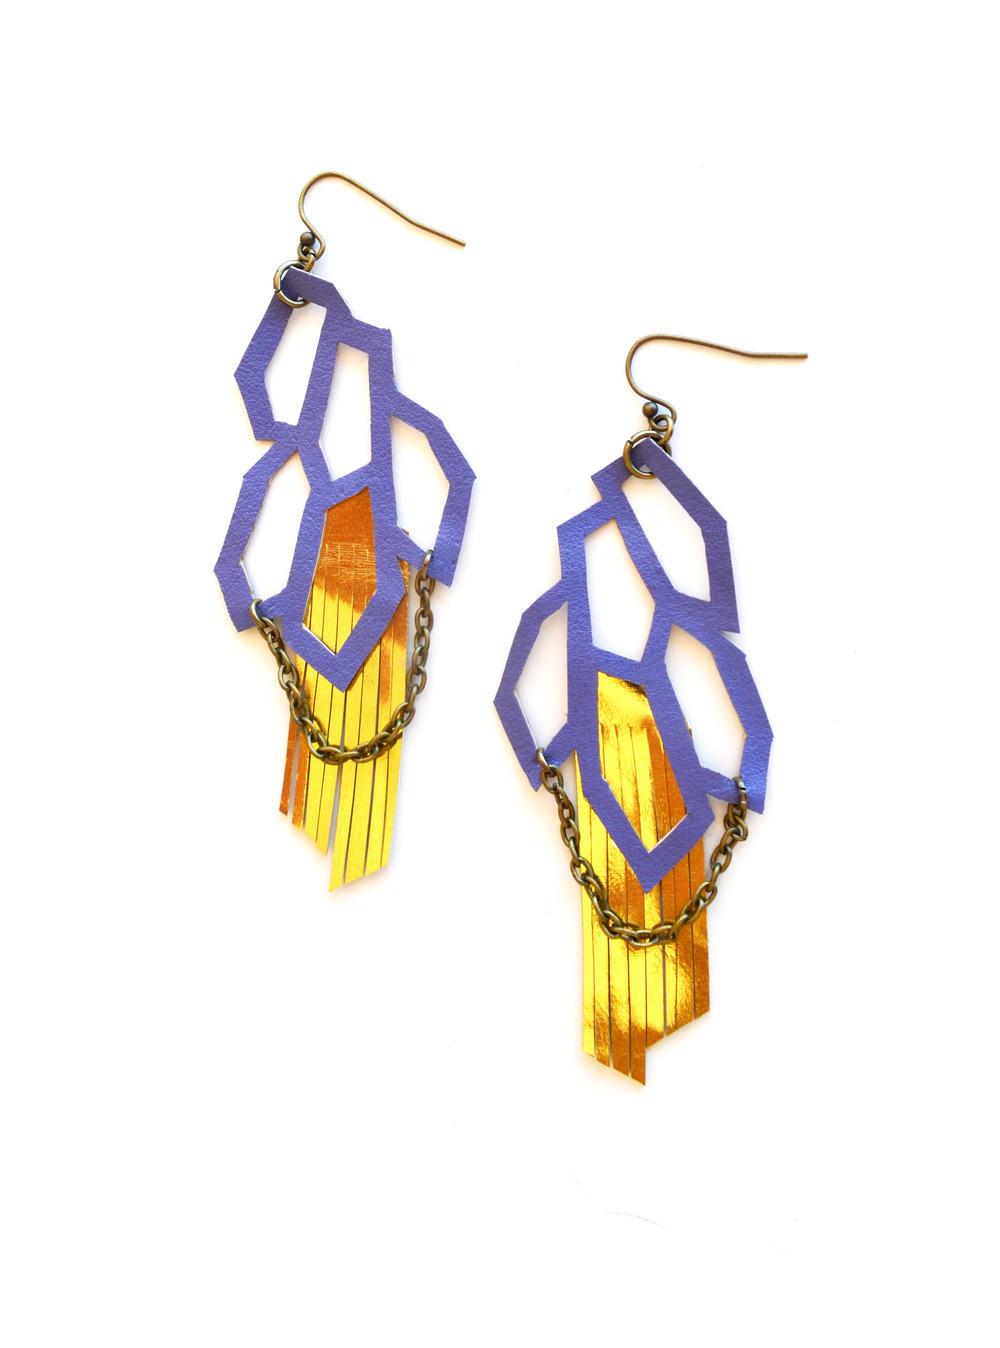 Geometric Leather Earrings Purple Hexagon and Gold Fringe 3.jpg